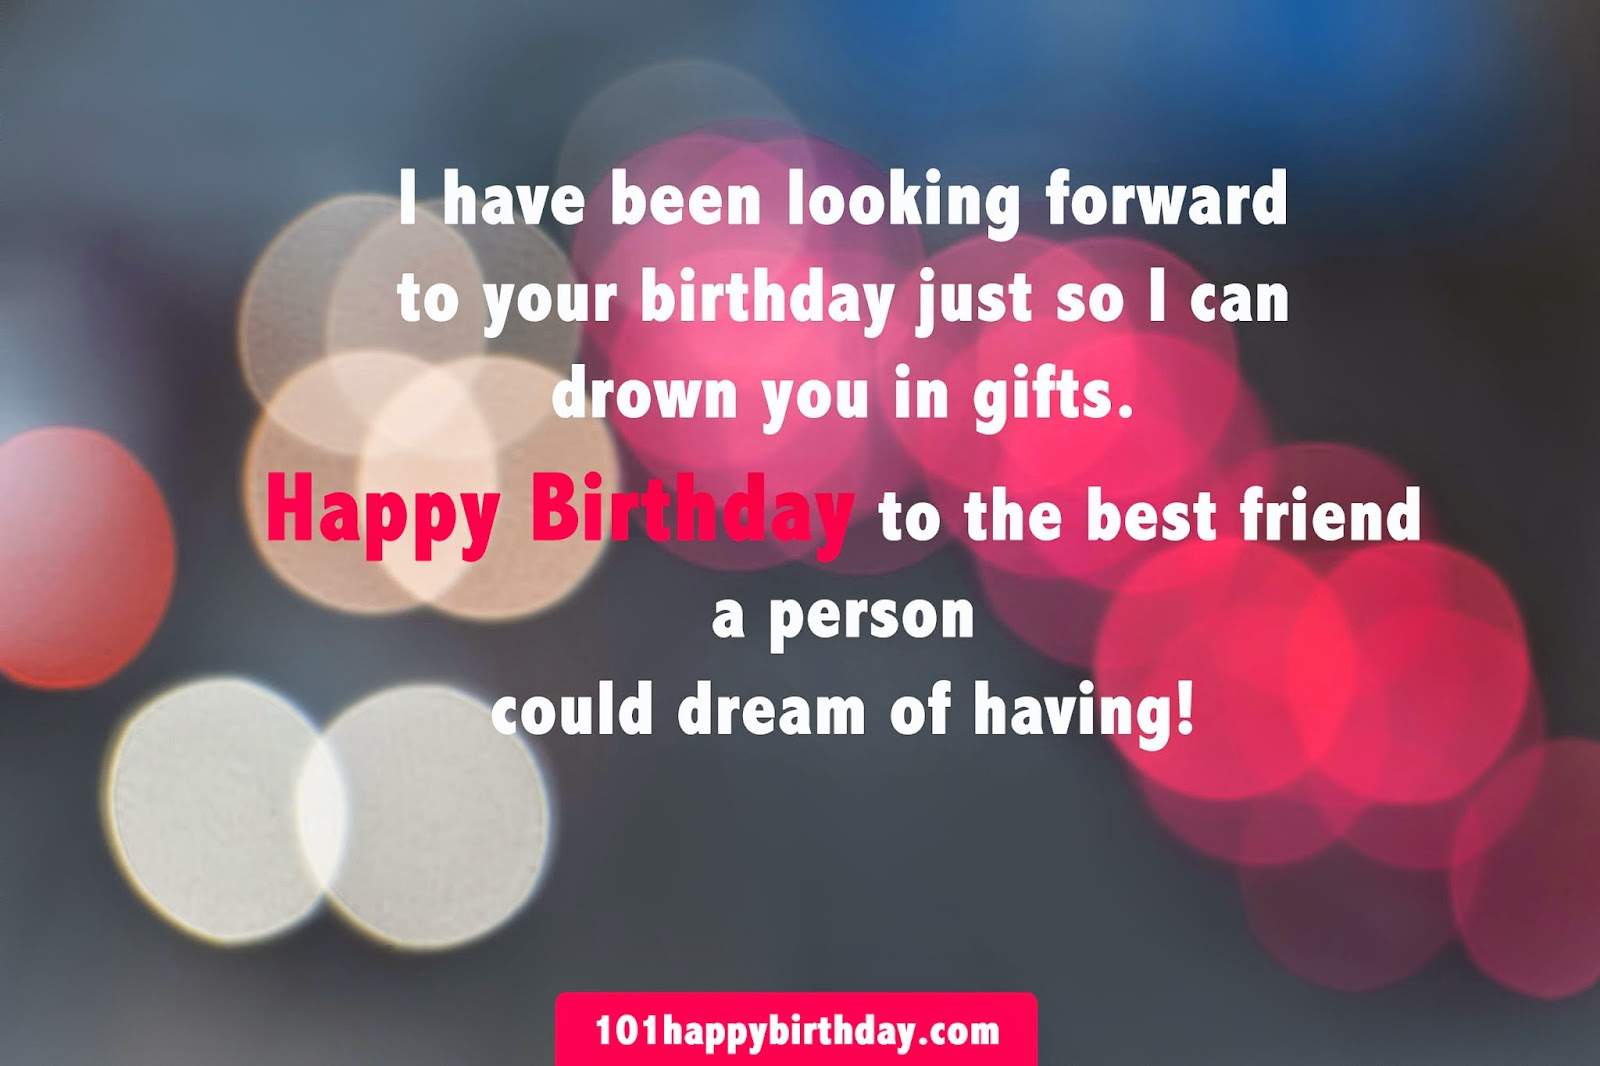 birthday message for best friend boy ; I%252Bhave%252Bbeen%252Blooking%252Bforward%252Bto%252Byour%252Bbirthday%252Bjust%252Bso%252BI%252Bcan%252Bdrown%252Byou%252Bin%252Bgifts